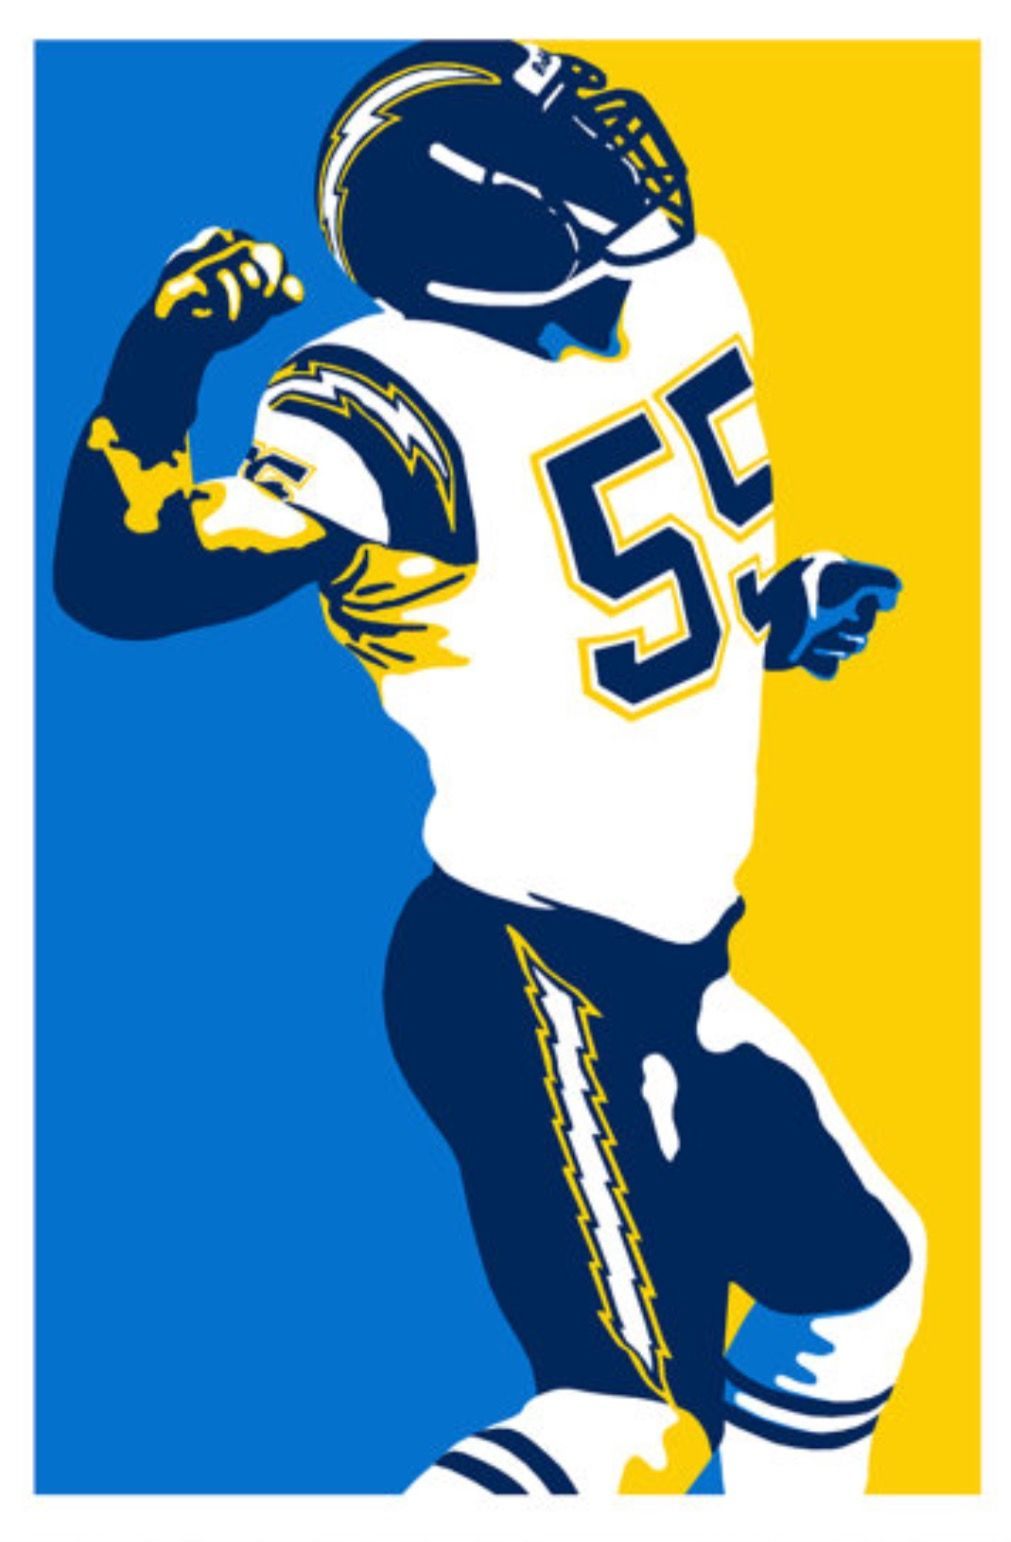 Seau RIP Chargers football, San diego chargers, Los